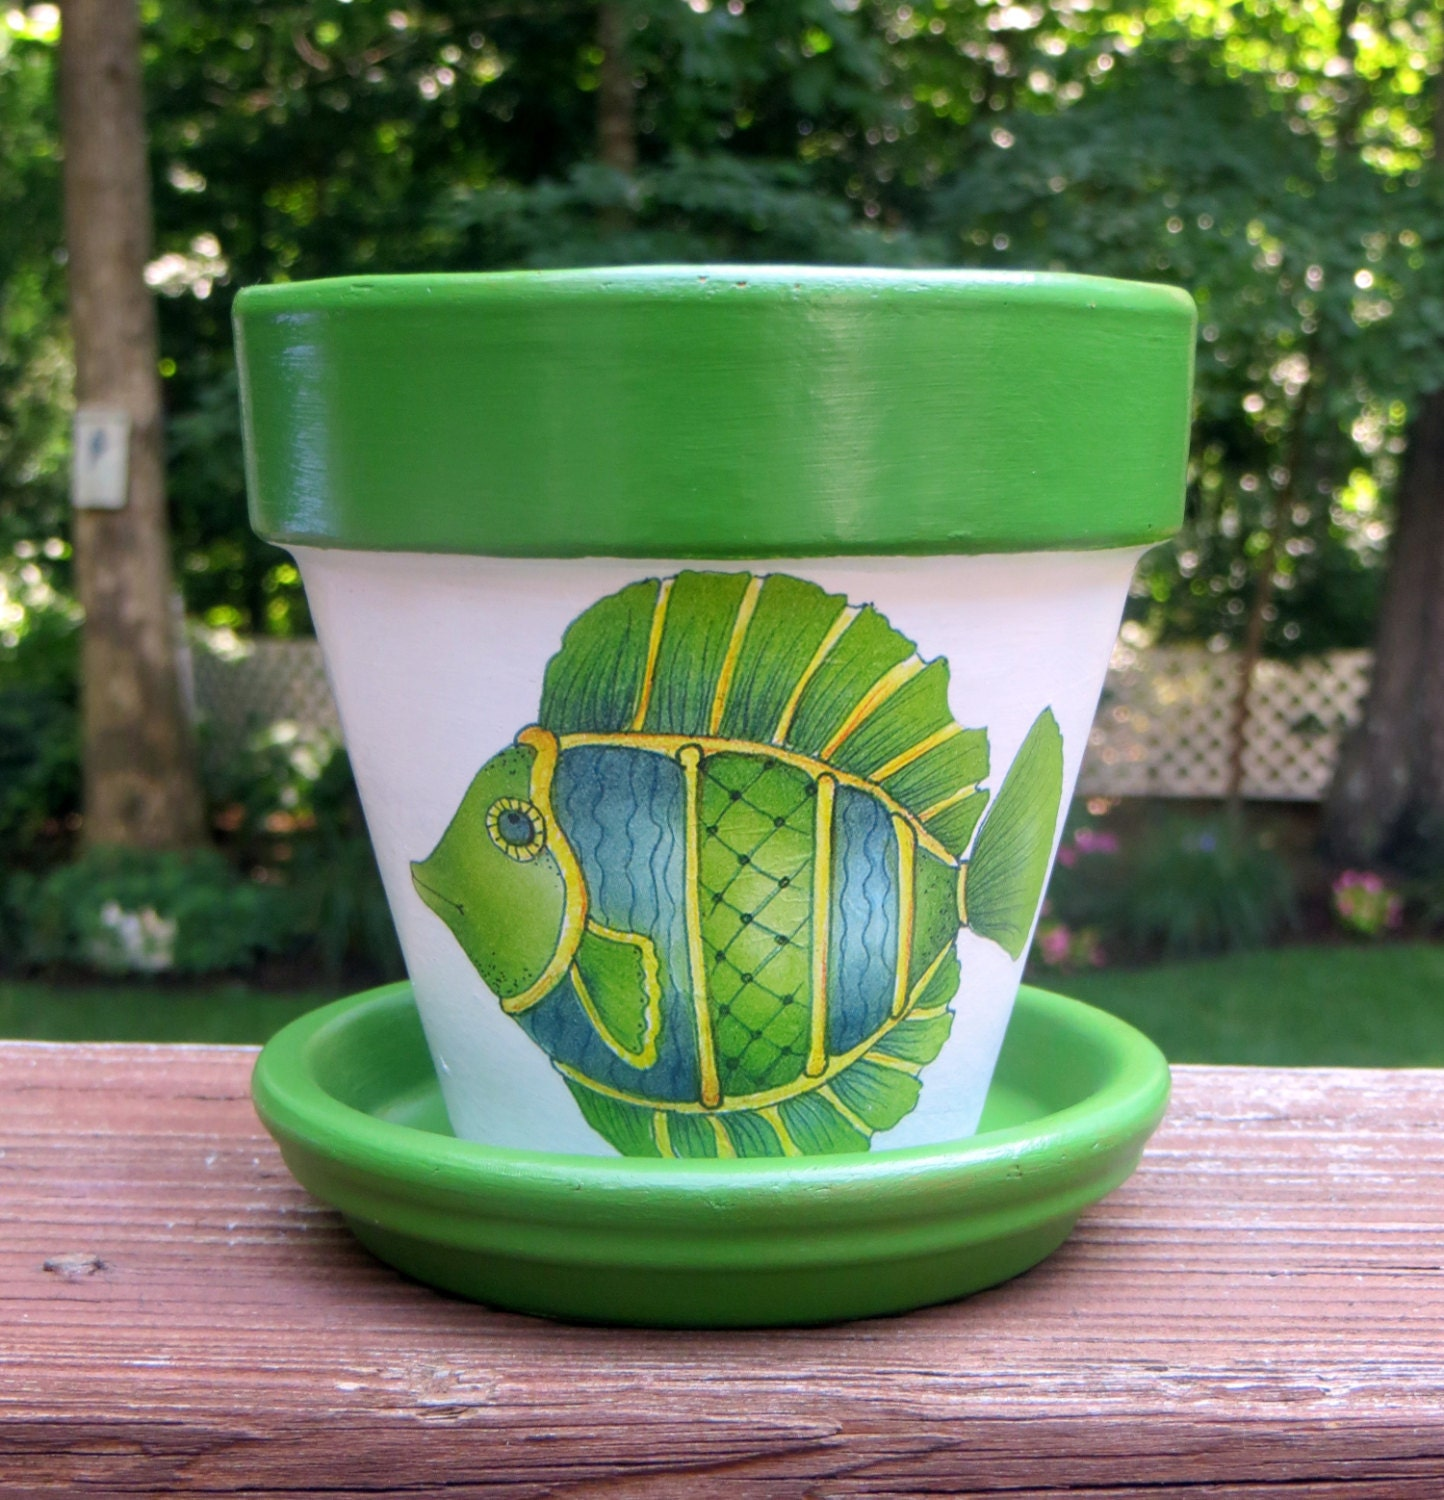 Green Terra Cotta : Painted green fish terra cotta flower pot by